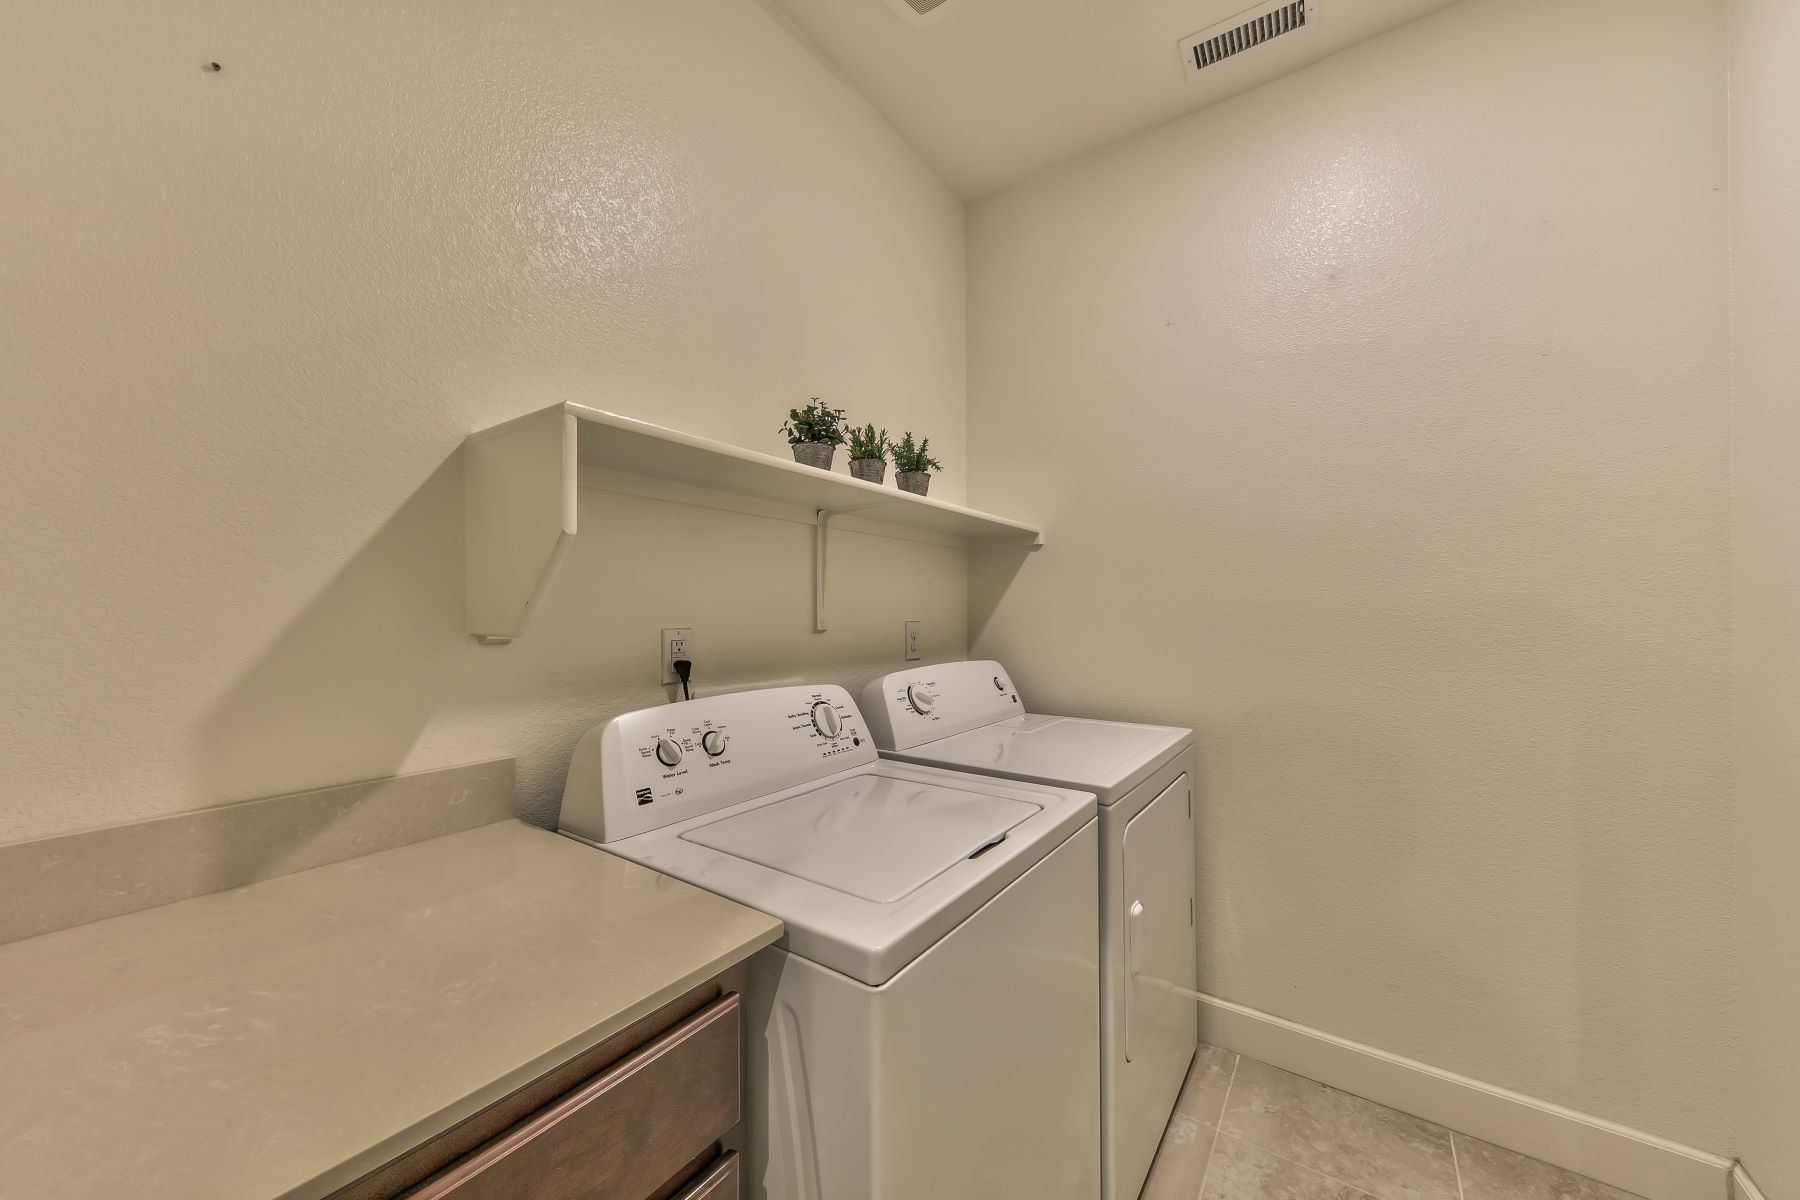 Additional photo for property listing at Better Than New One Level Living 7378 Overture Dr Reno, Nevada 89506 United States